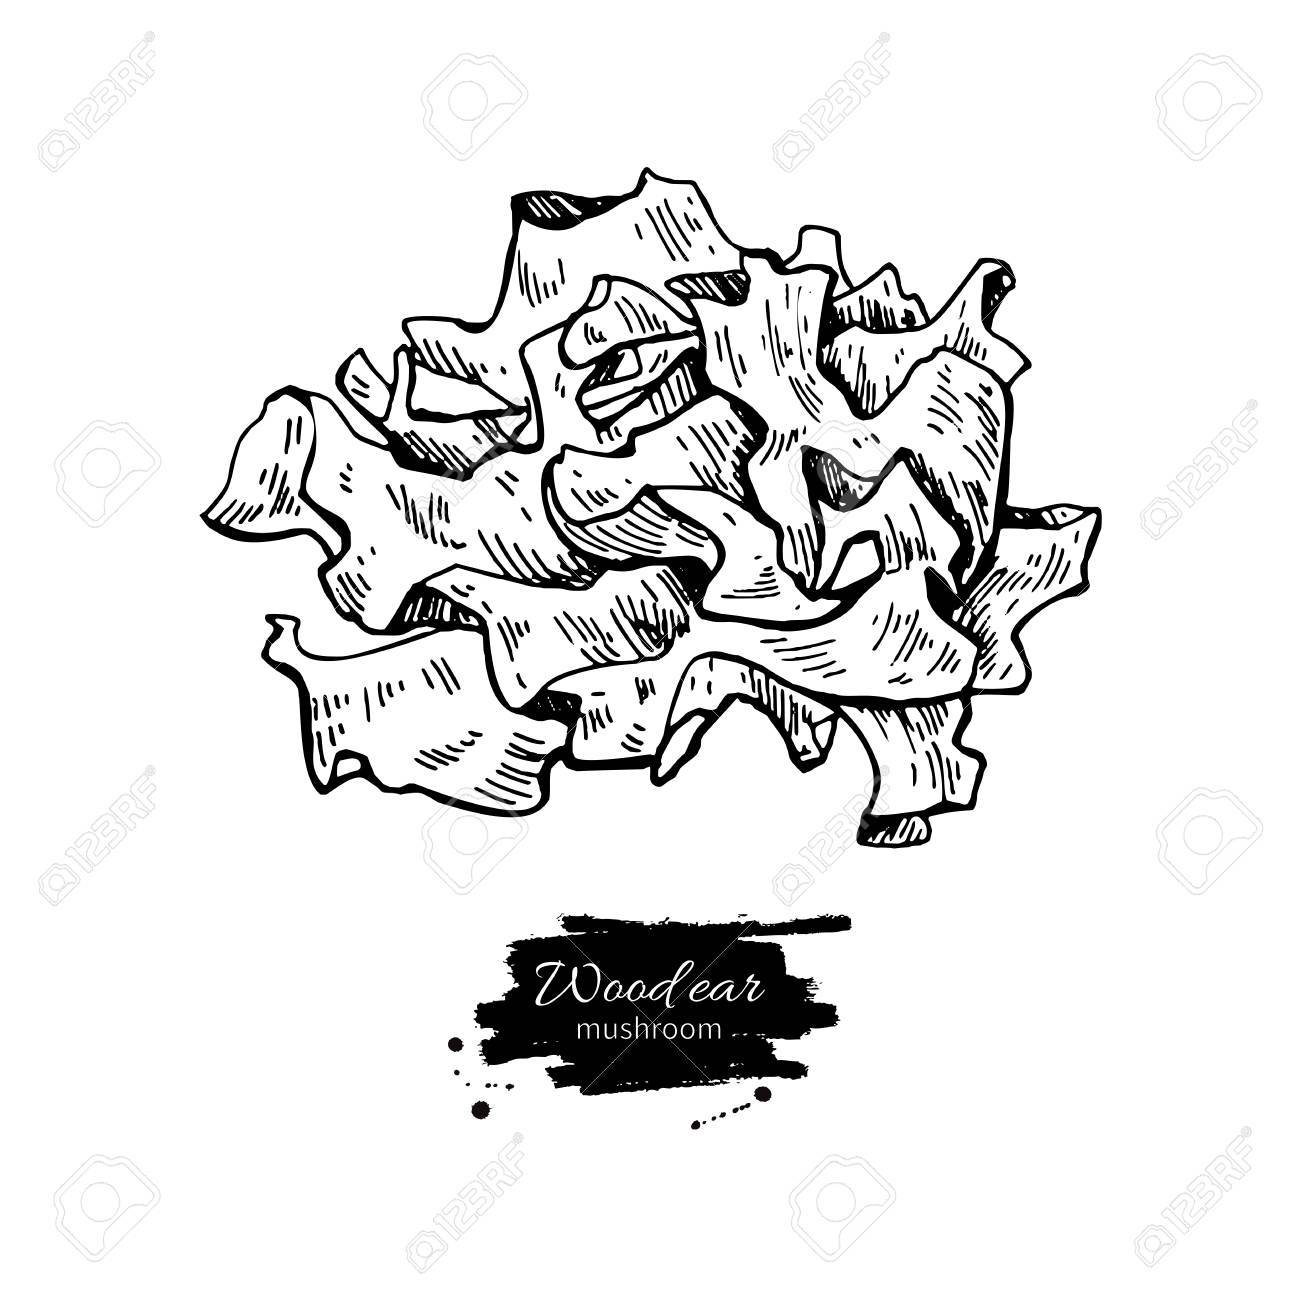 1300x1300 Wood Ear Mushroom Hand Drawn Vector Illustration. Sketch Food